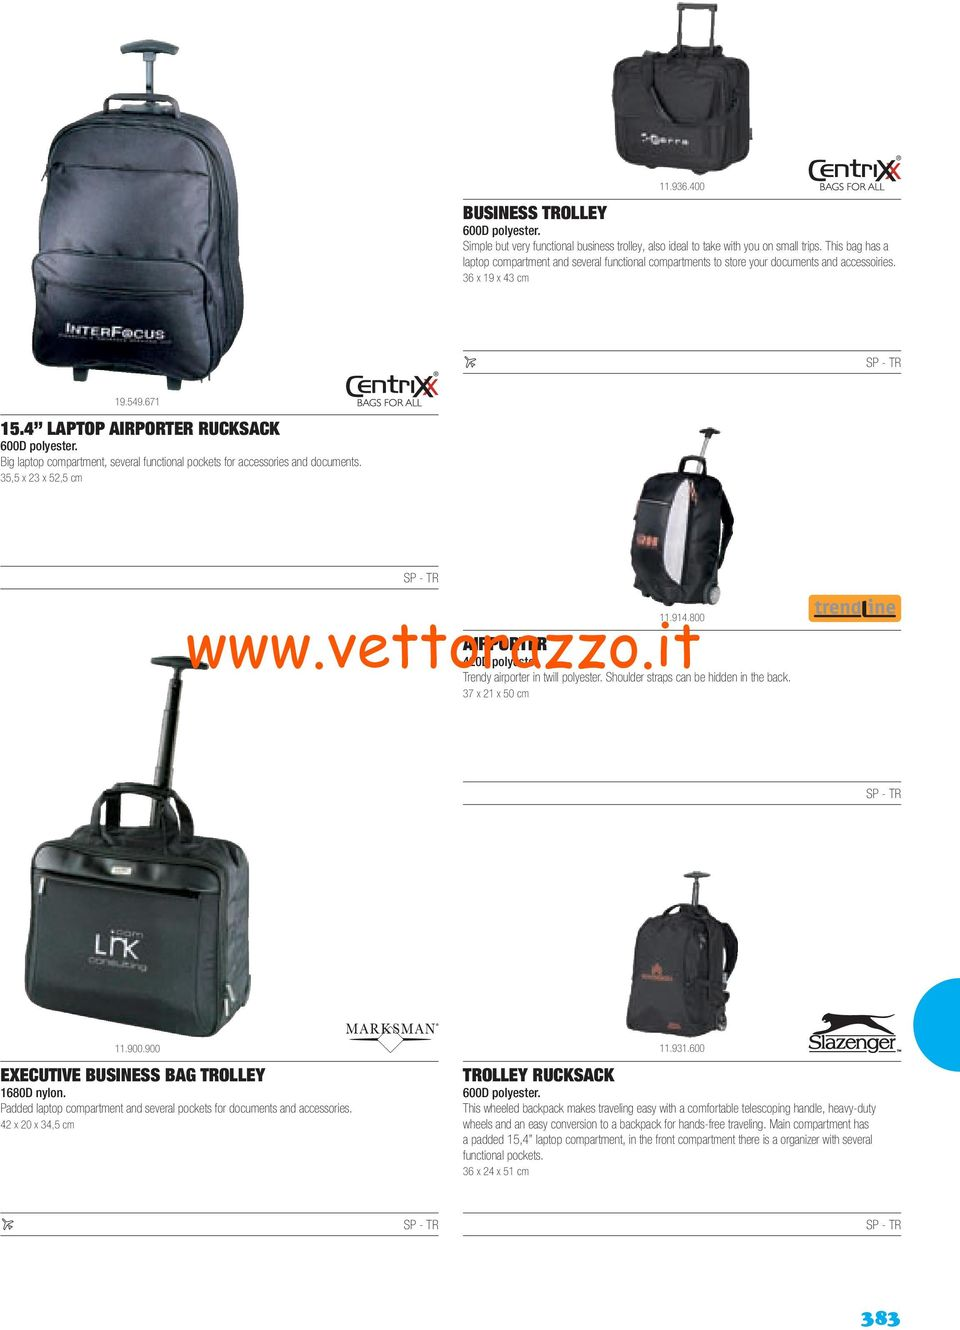 Big laptop compartment, several functional pockets for accessories and documents. 35,5 x 23 x 52,5 cm 11.914.800 AIRPORTER 420D polyester. Trendy airporter in twill polyester.